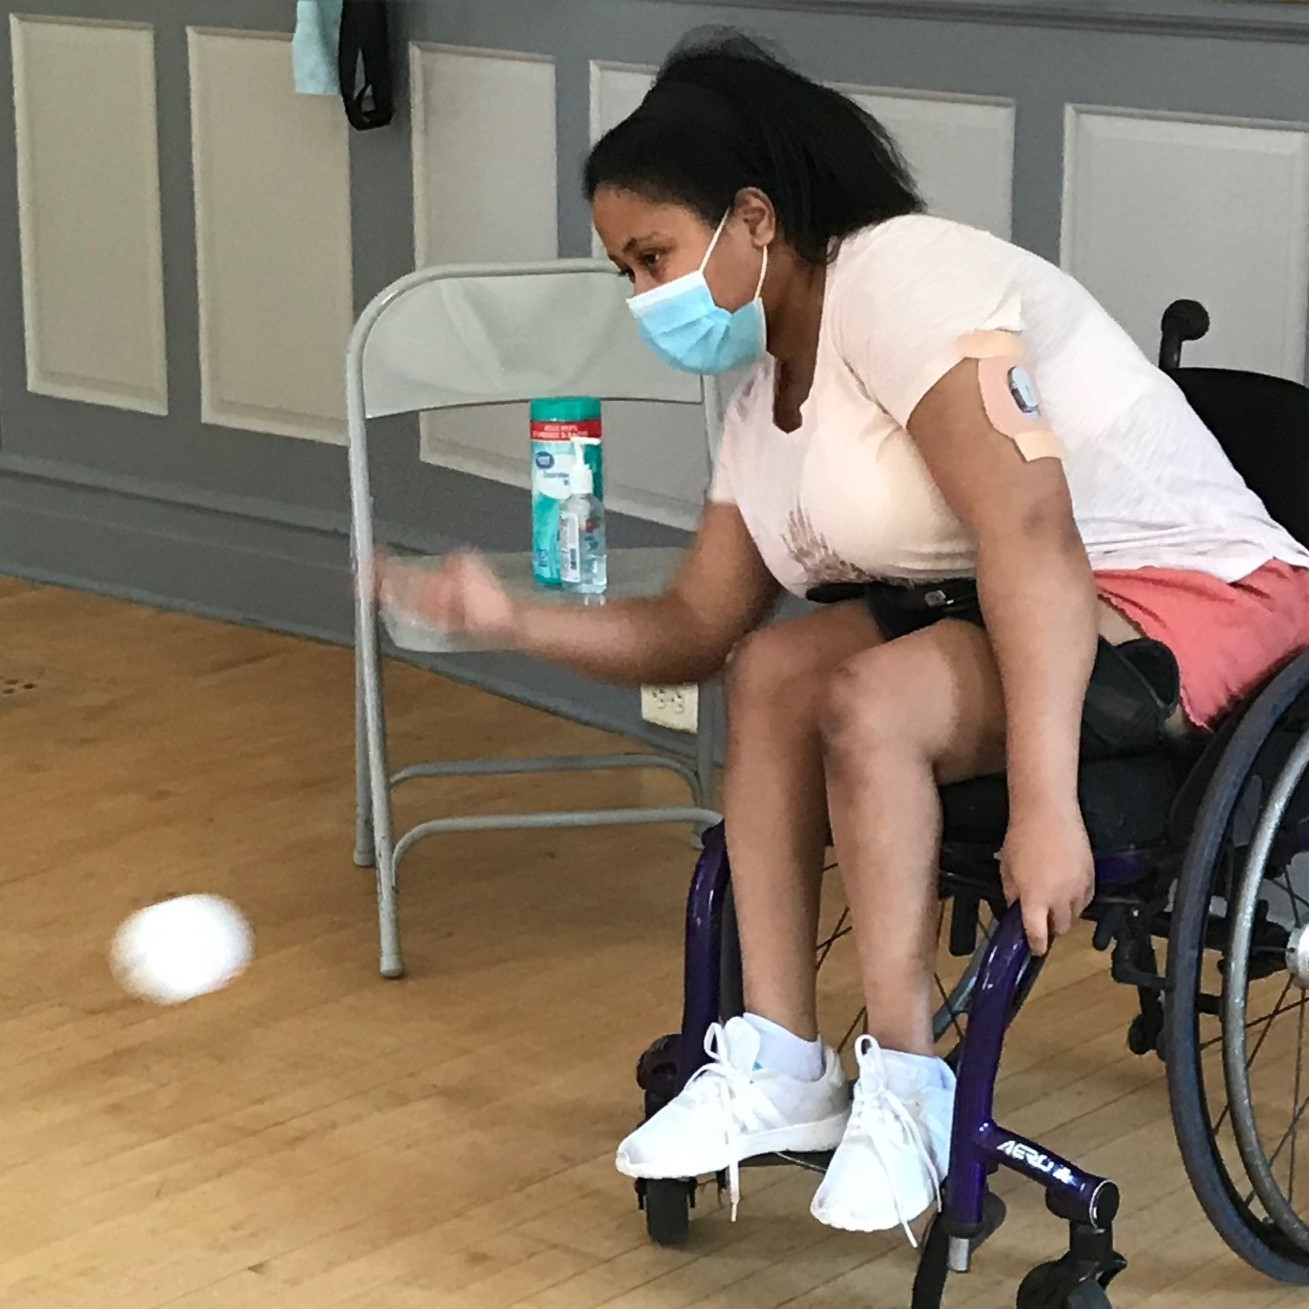 Female athlete using a wheelchair and throwing a boccia ball. She is wearing a mask.